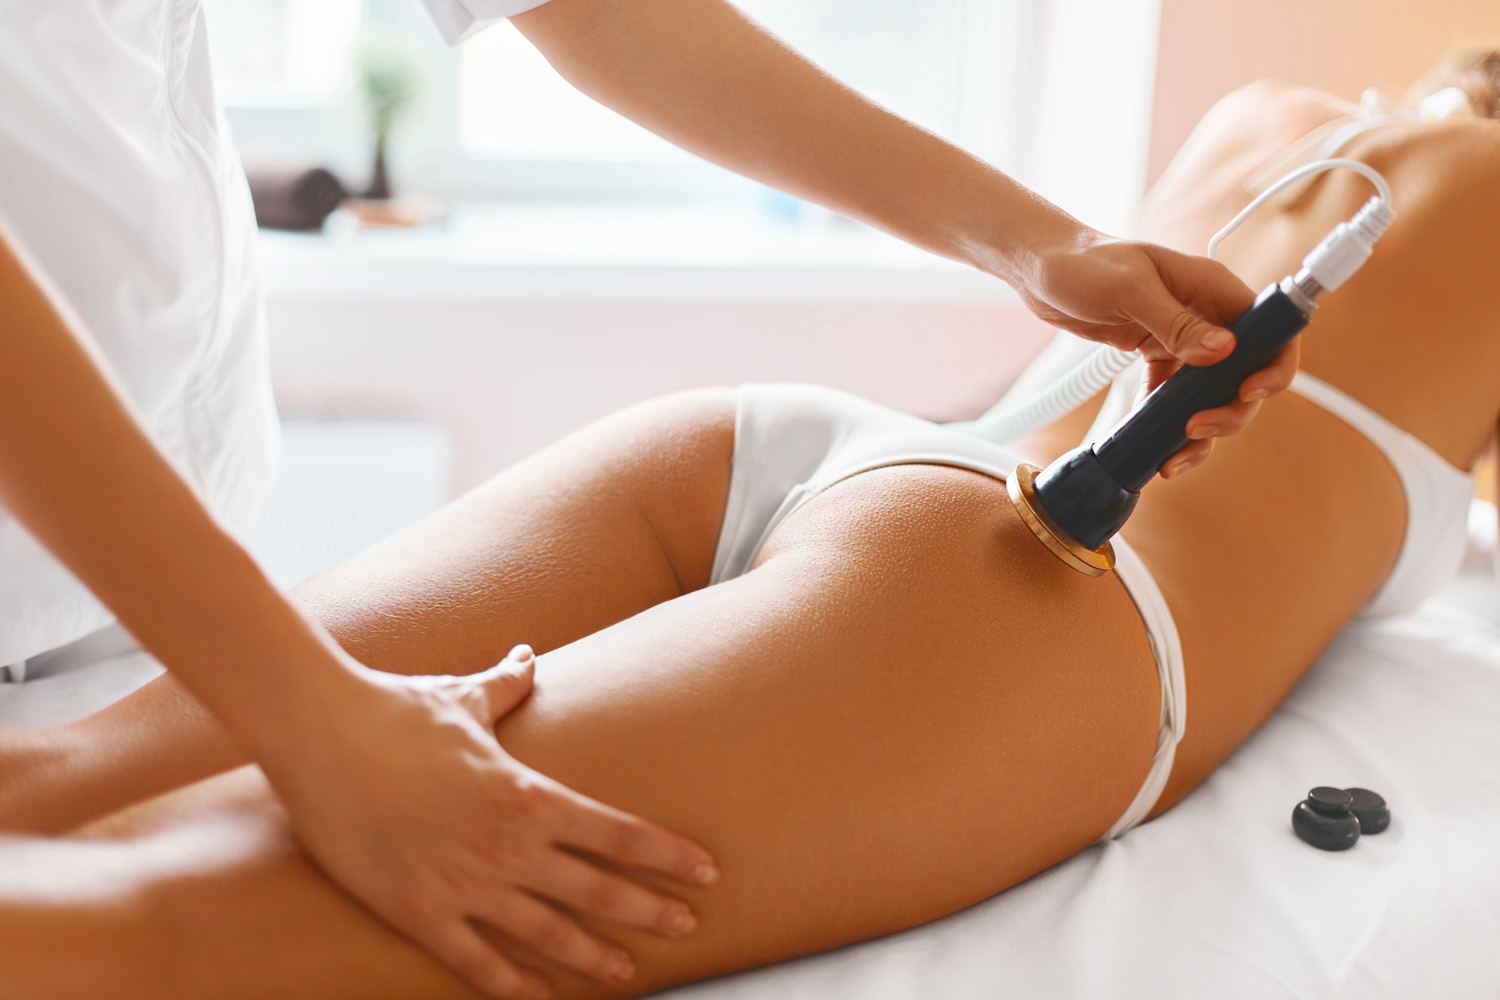 Radiofrequency and turmeric for cellulite reduction | LipoTherapeia